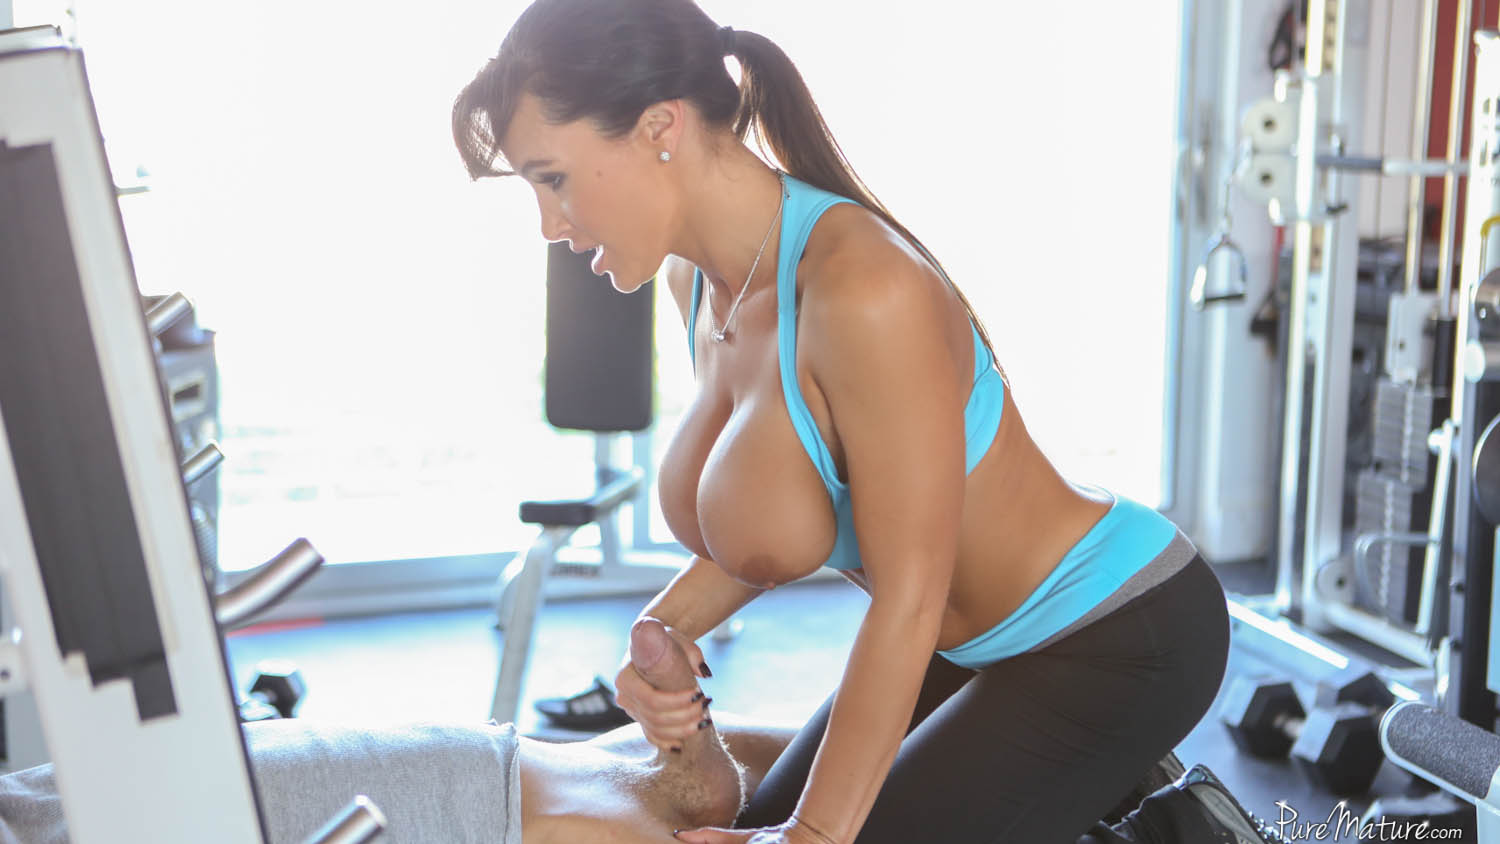 the gym at Lisa ann puremature